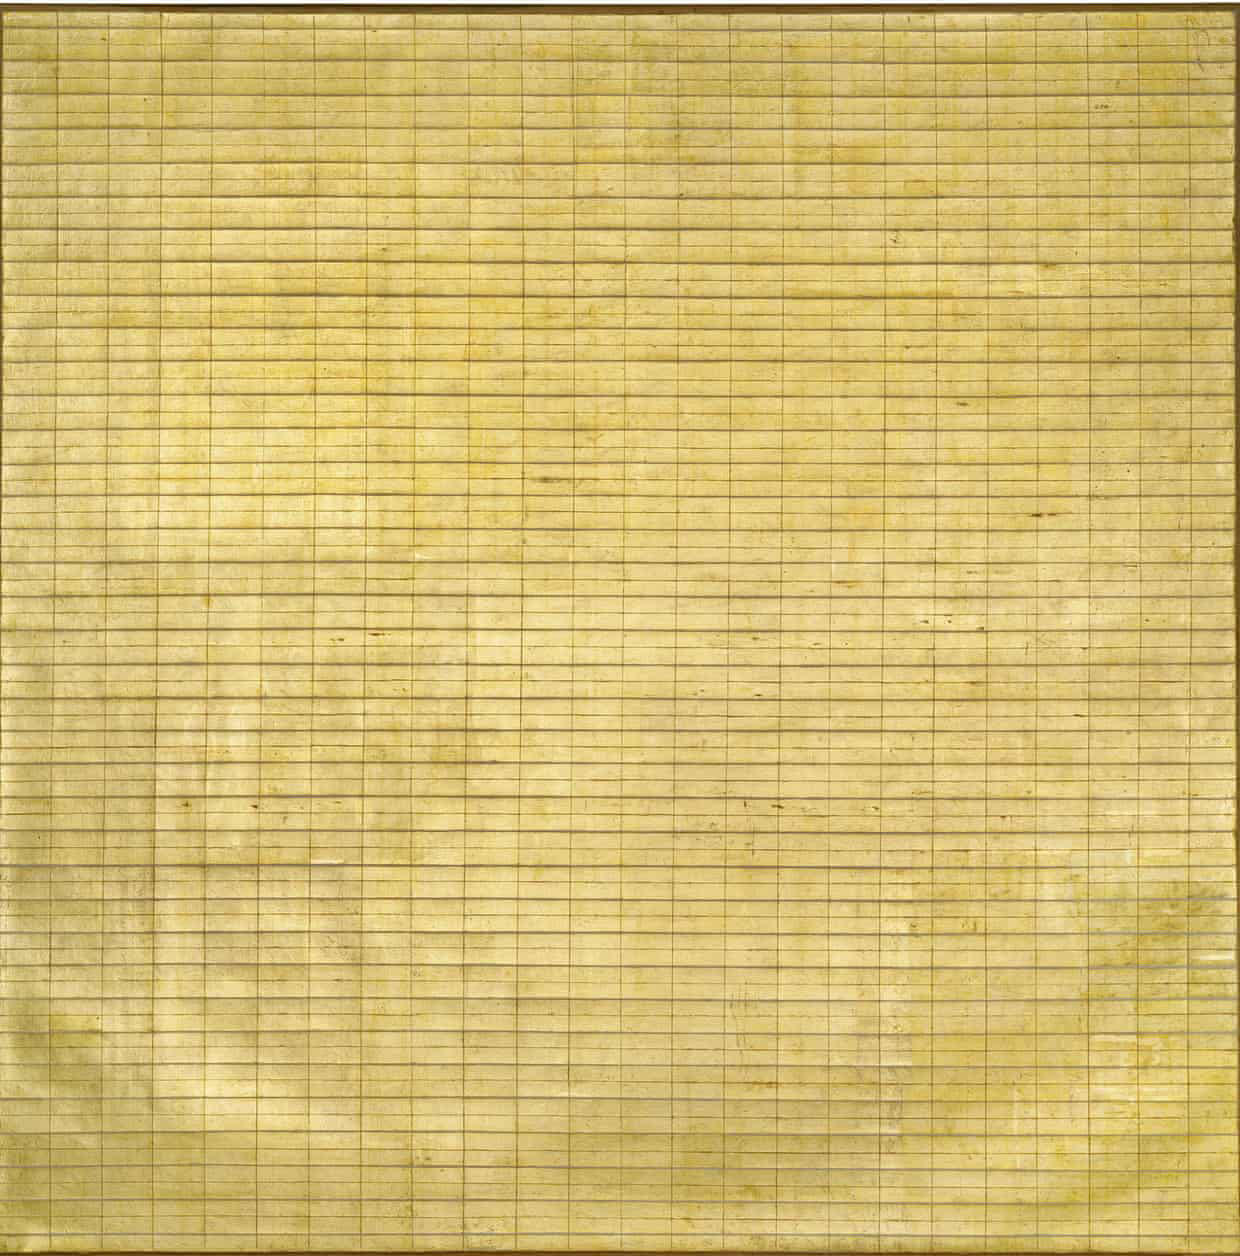 Friendship, 1963 by Agnes Martin as featured in Paintings, Writings, Remembrances